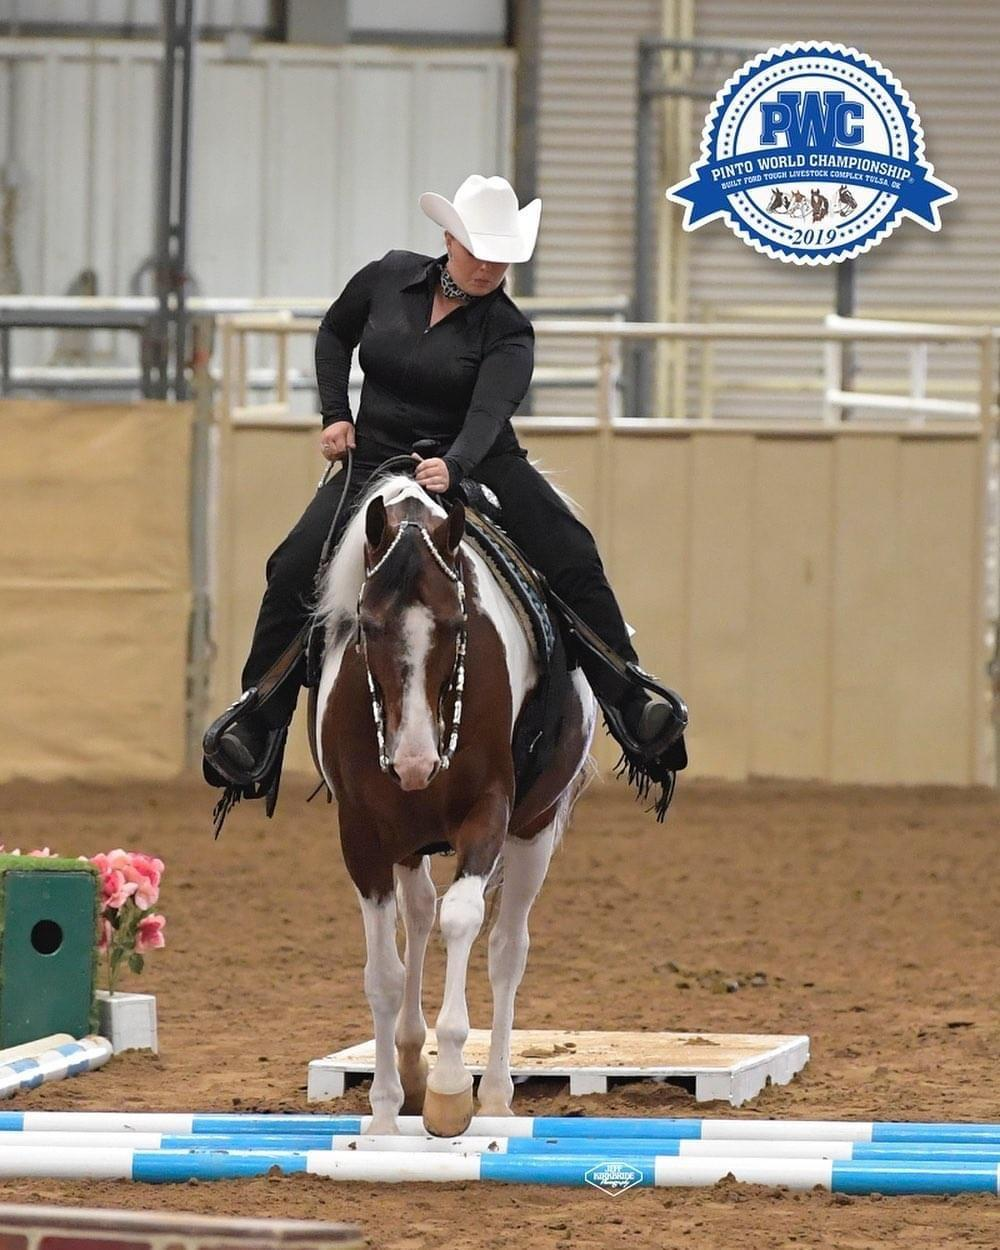 A horse I trained while in grad school, Rudy, and I at the Pinto World Championships in 2019